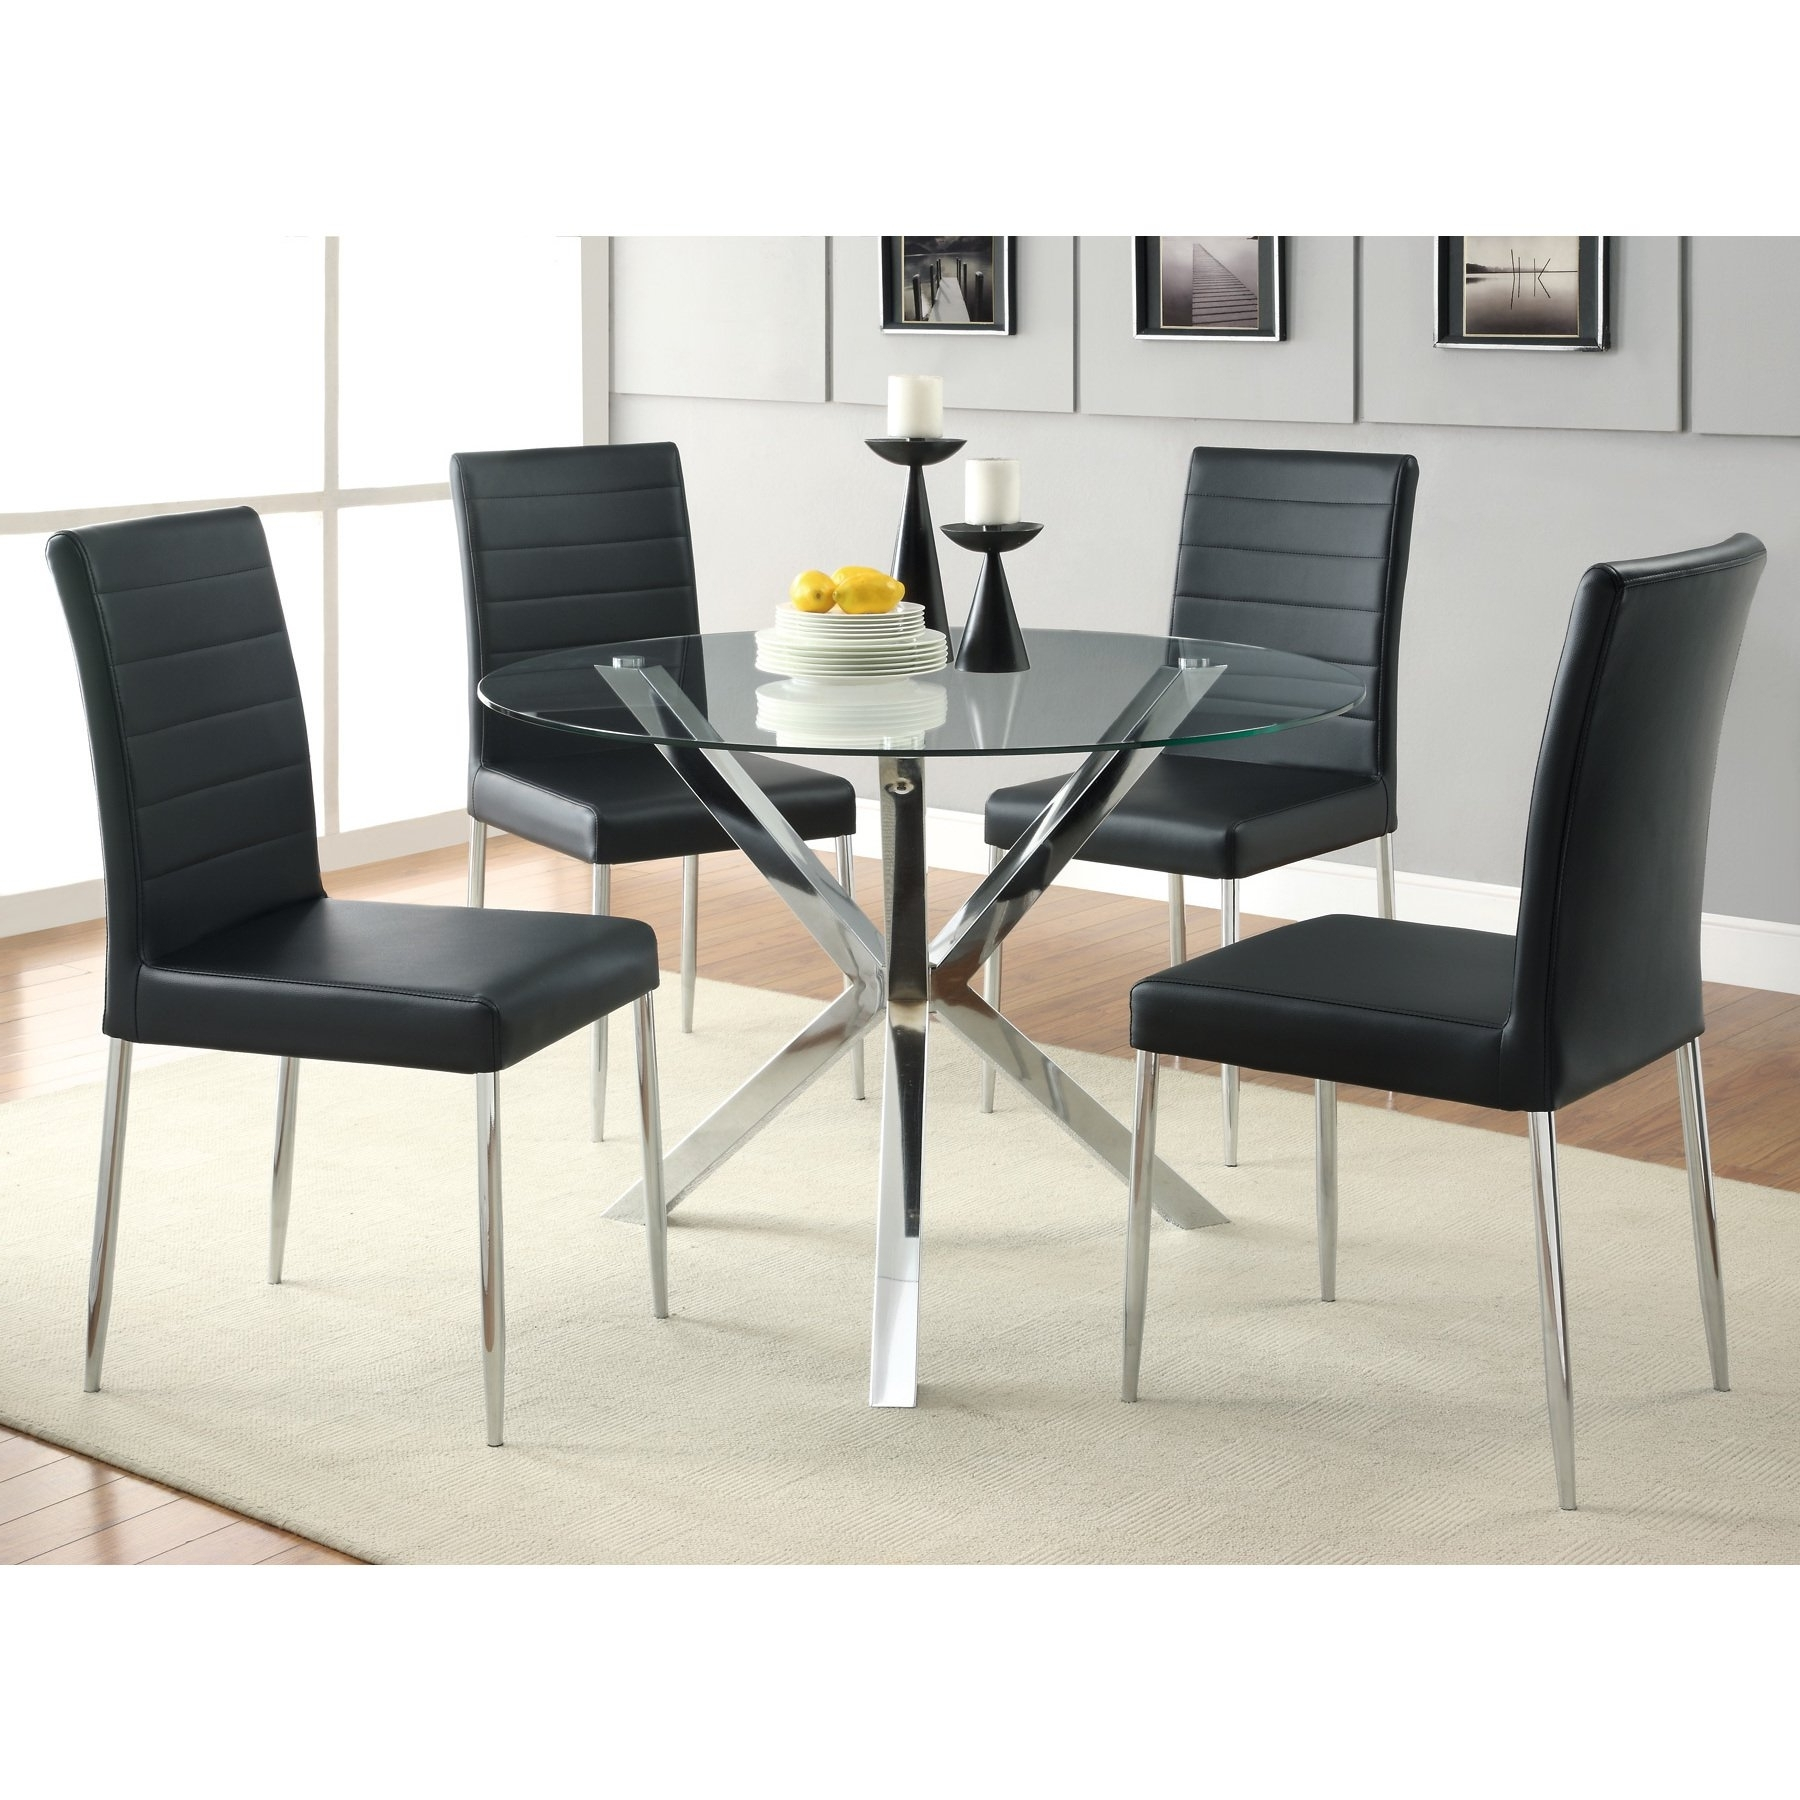 Chrome Dining Room Chairs With 2018 Shop Coaster Company Chrome Glass Top Dining Table – Free Shipping (Gallery 17 of 25)